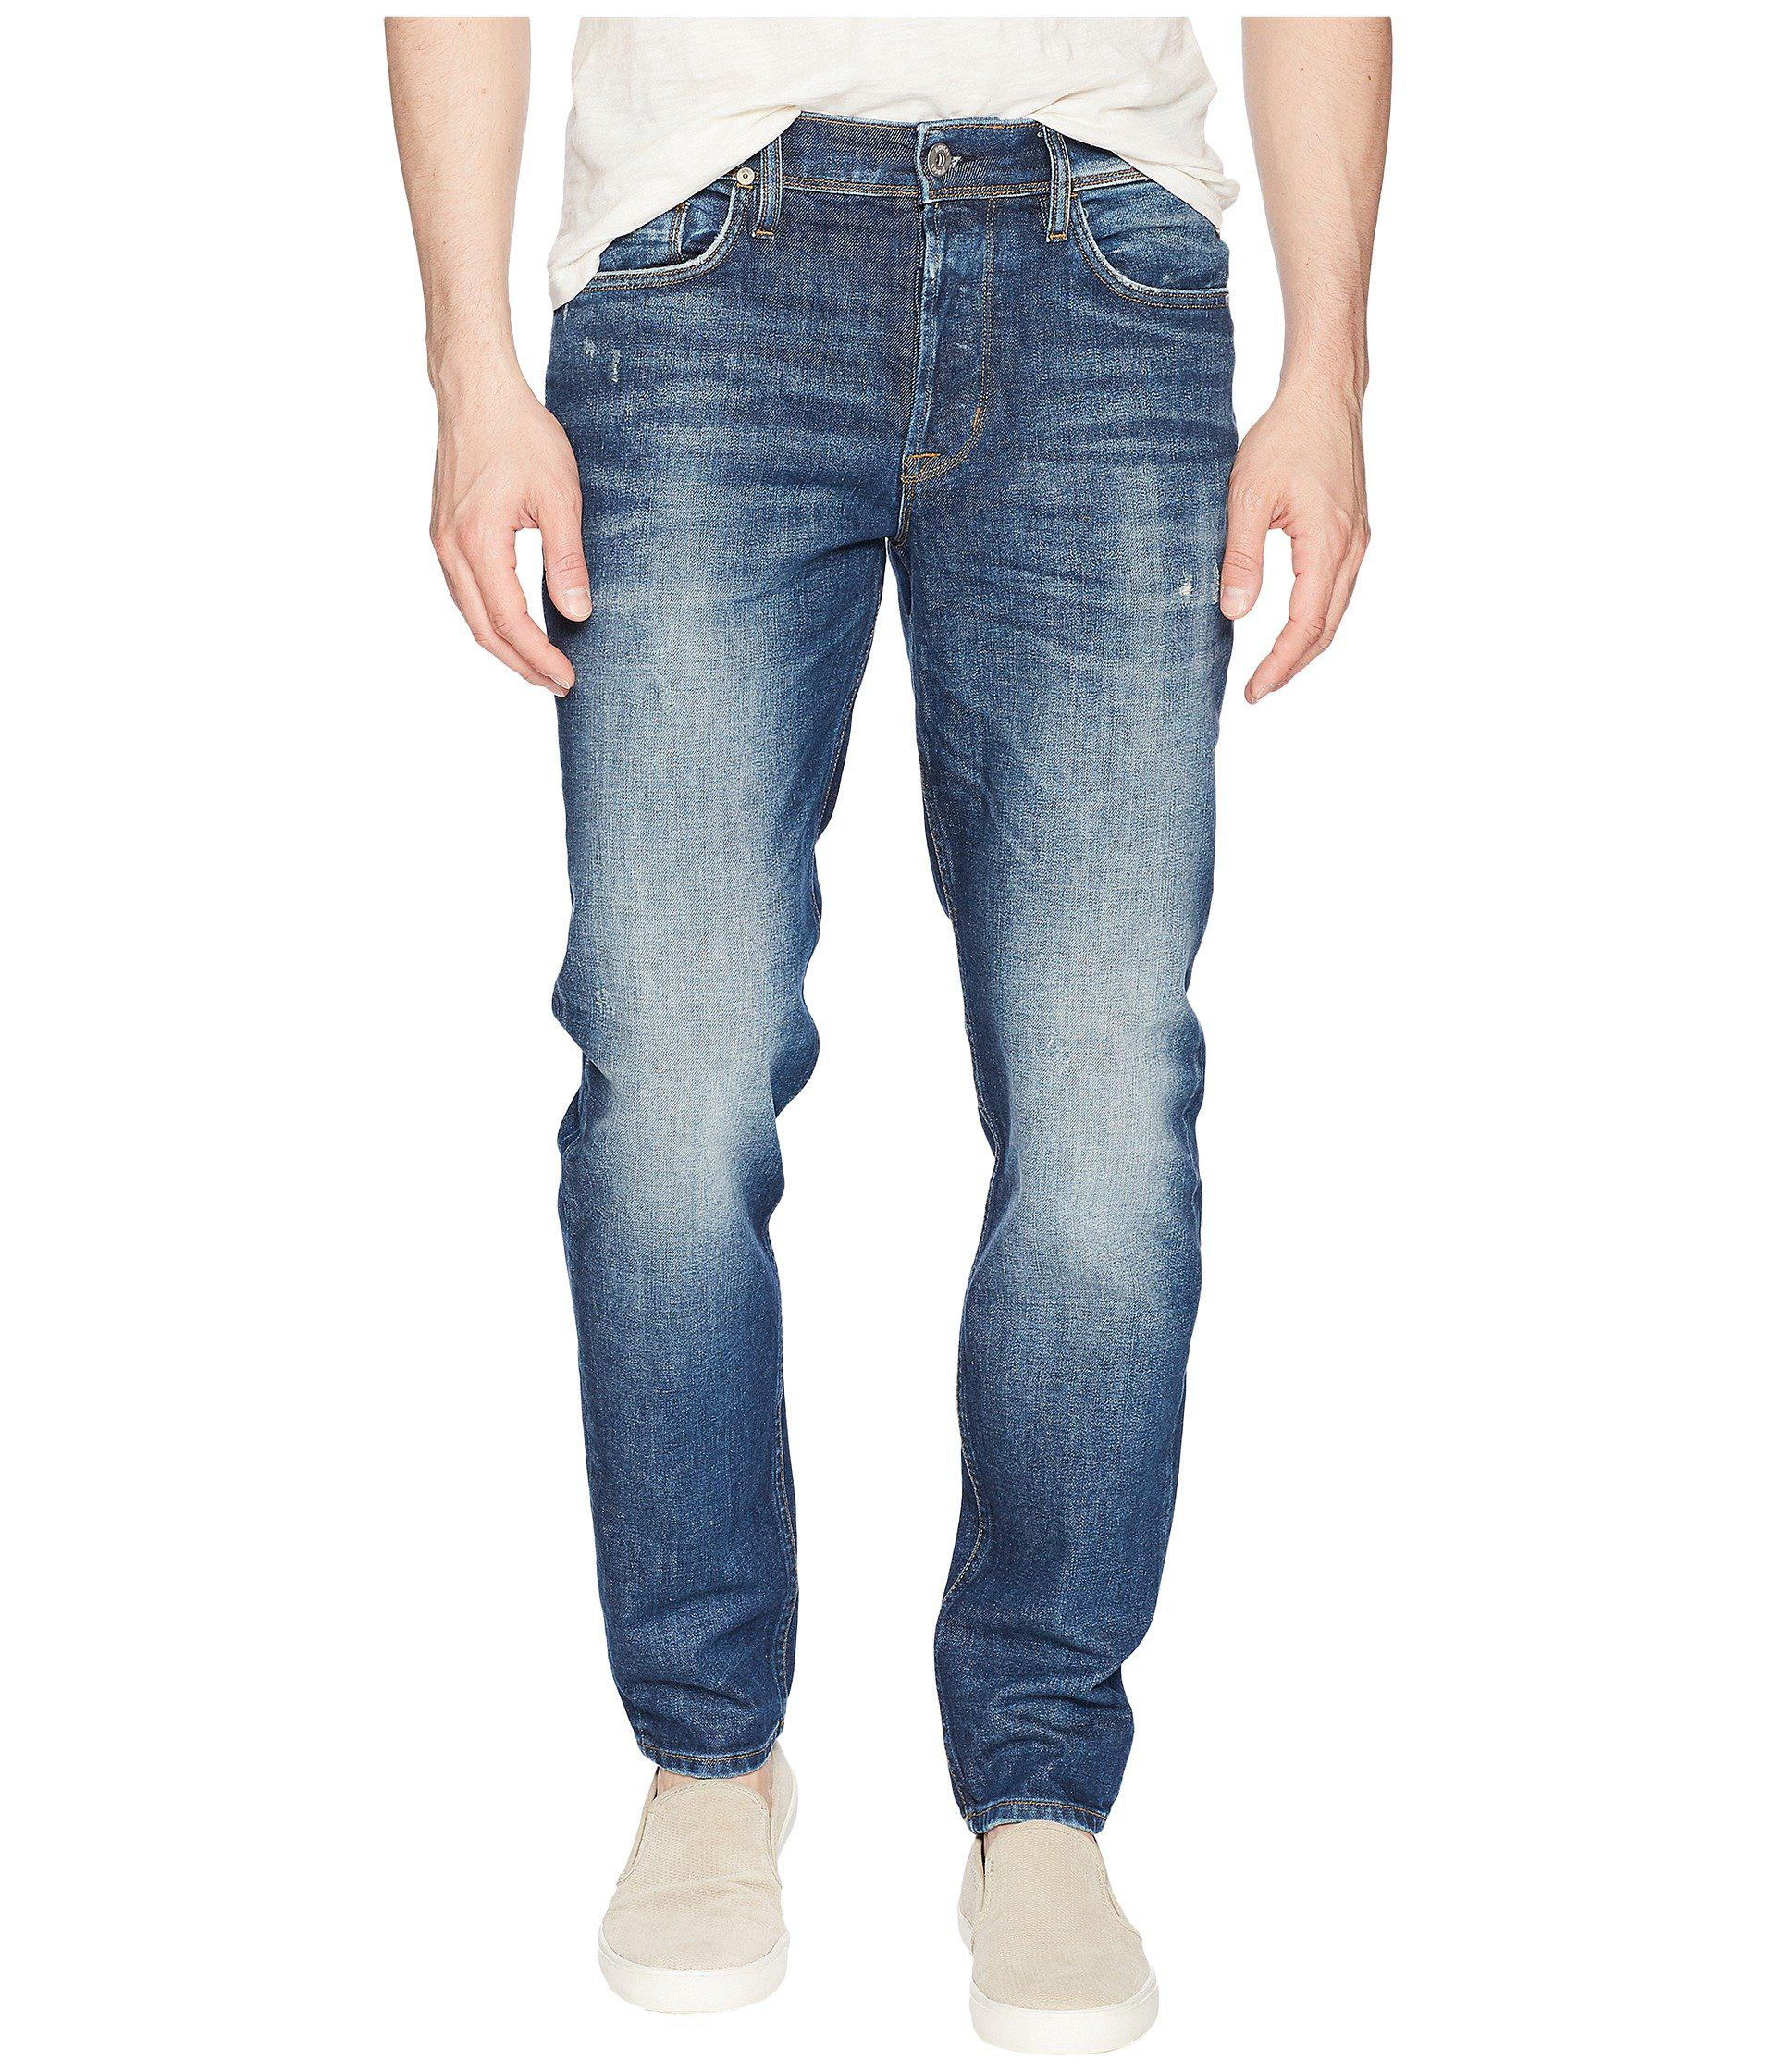 a28a8f91529 Lyst - Hudson Jeans Sartor Relaxed Skinny In All City (all City ...